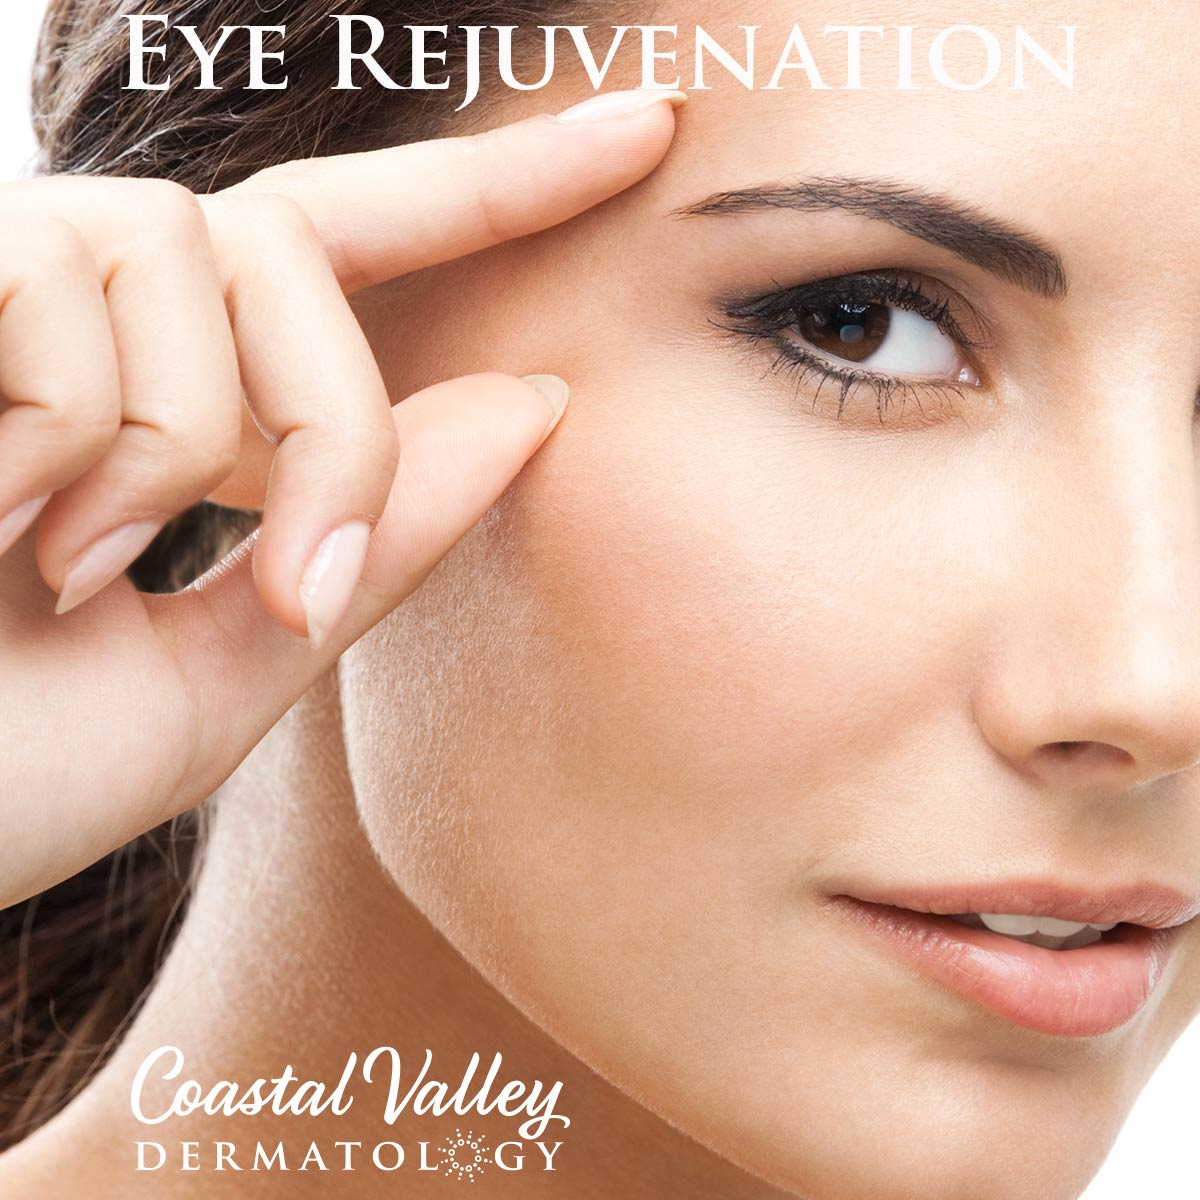 coastal-valley-dermatology-carmel-eye-rejuvenation-photo